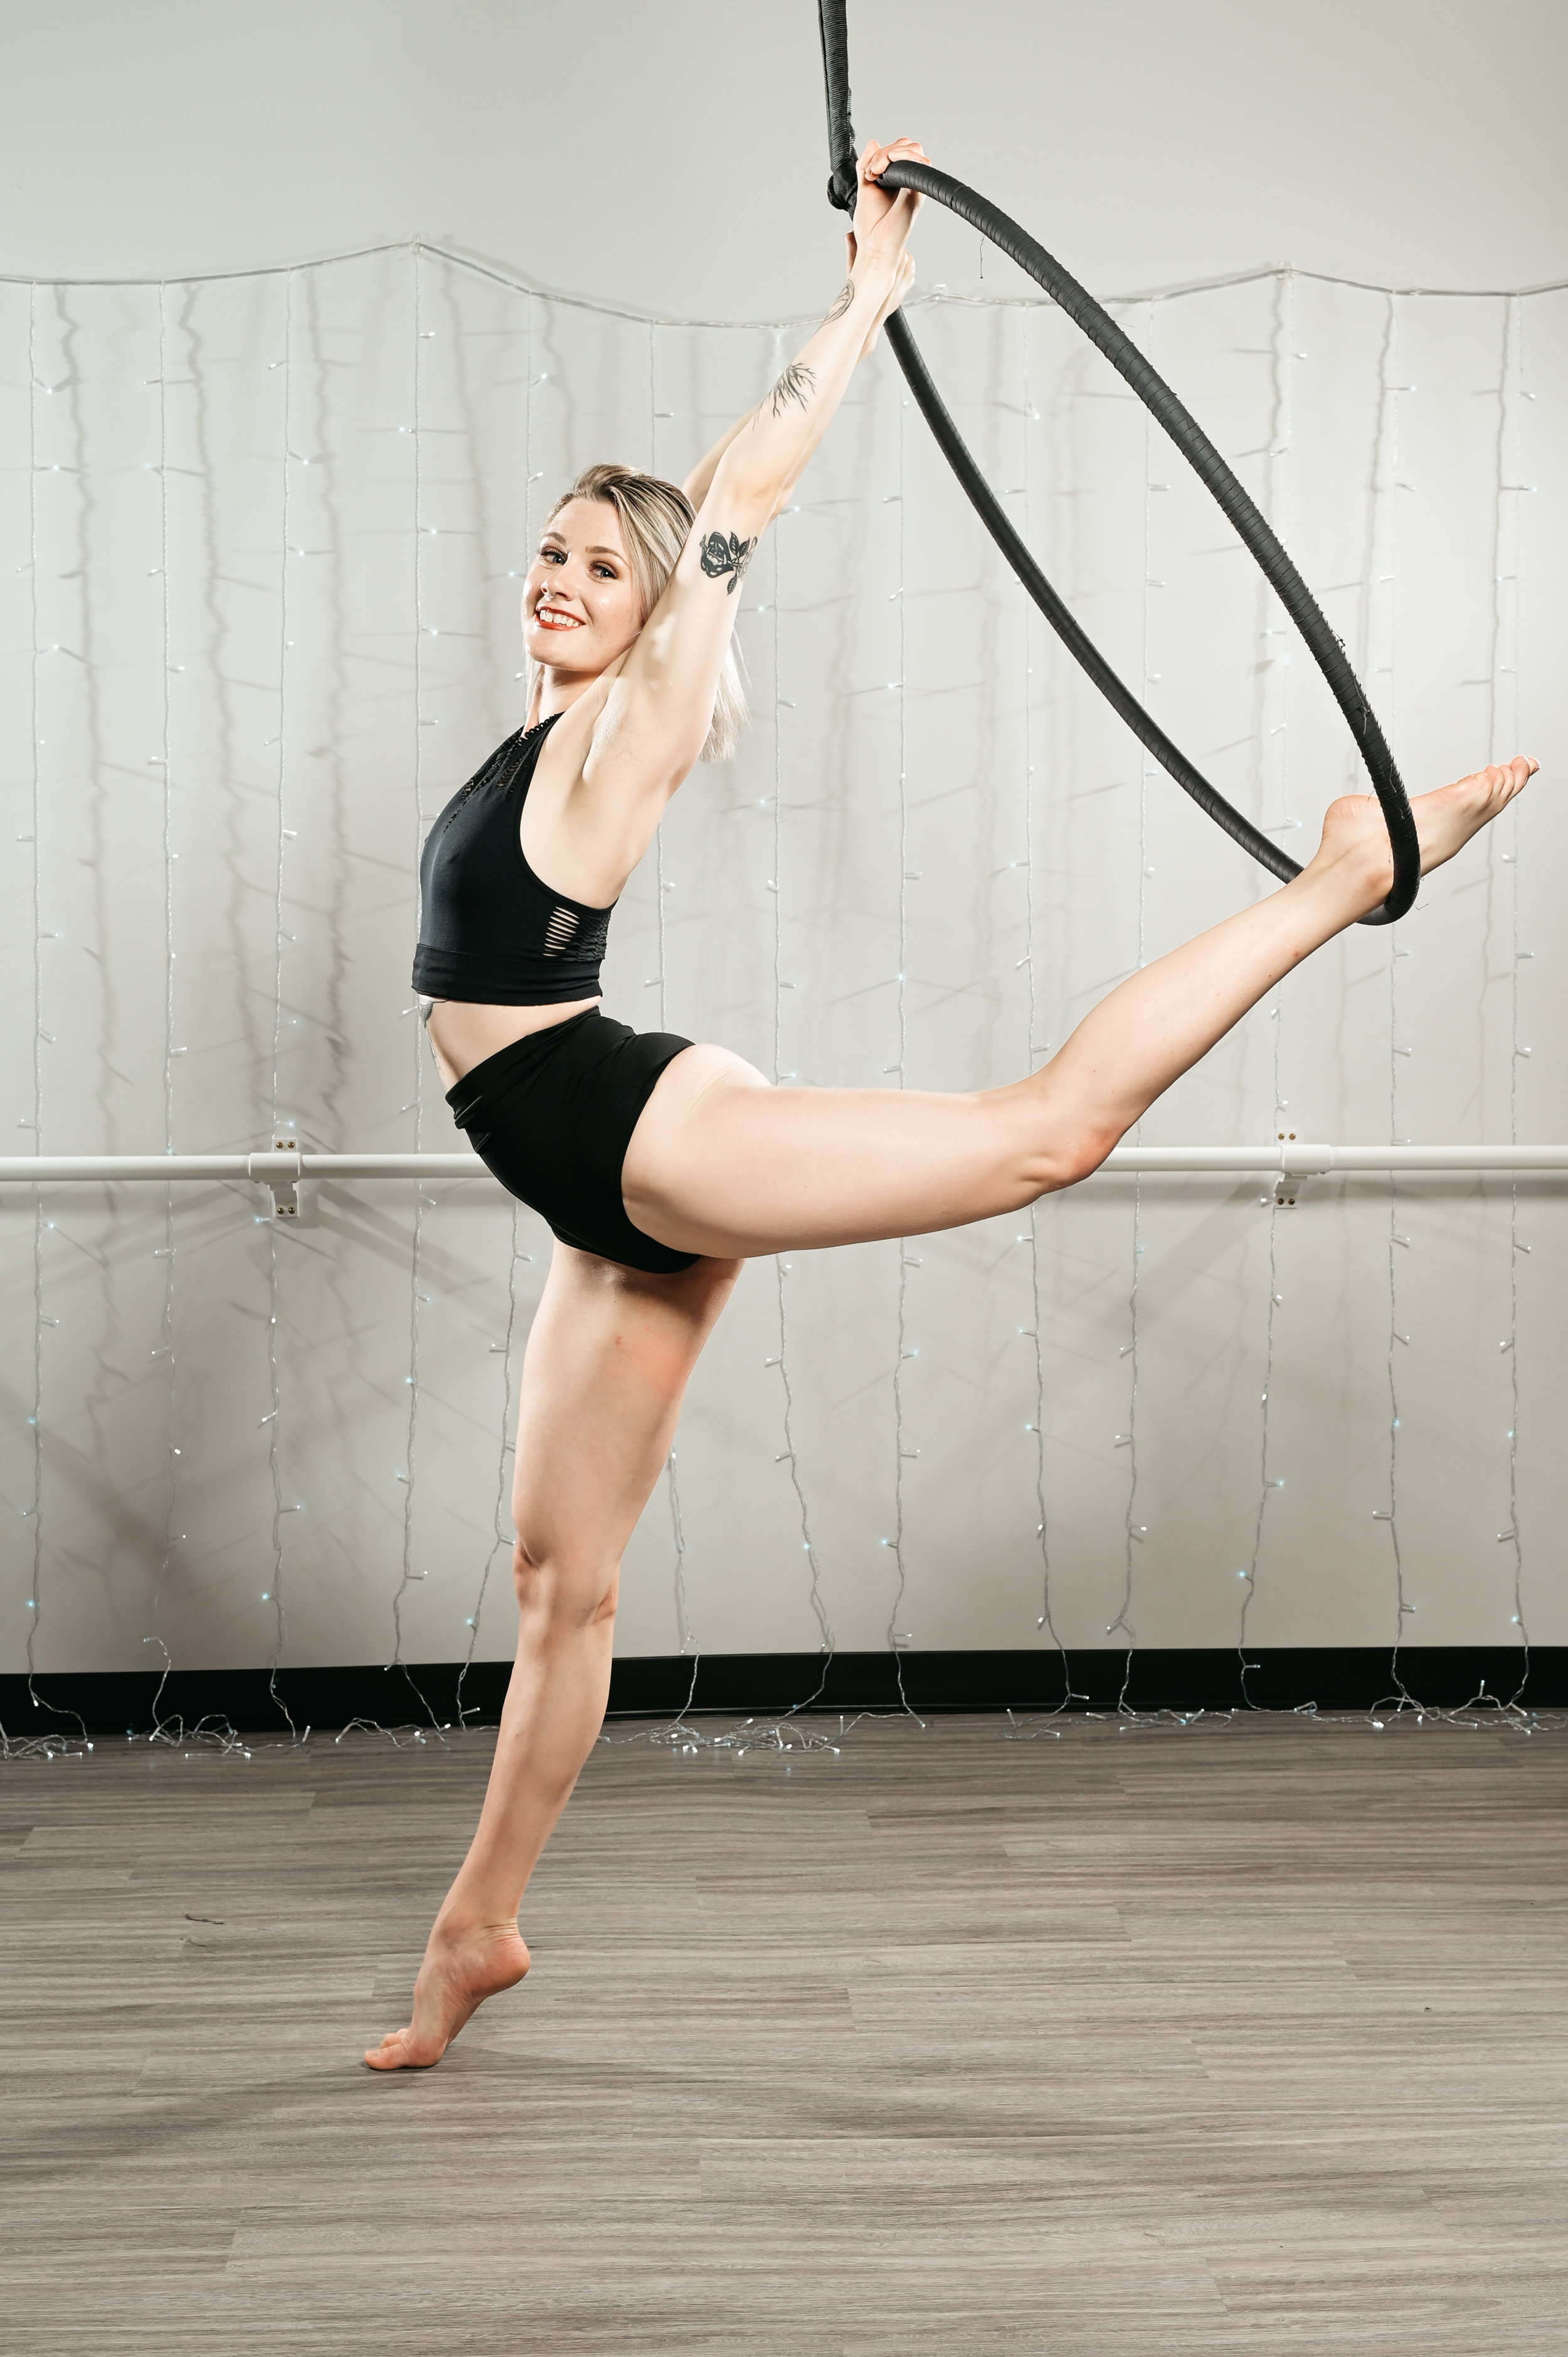 INTERMEDIATE AERIAL HOOP FUNDAMENTALS - Intermediate Aerial Hoop Fundamentals focuses on building upon basic poses & transitions as well as introducing new movements. In this session you will be exposed to the fluidity that the discipline allows for.Next Step: Repeat current level until you feel comfortable moving on. We encourage you to begin taking Aerial Hoop companion classes at this time to expand your aerial hoop skills. When you feel comfortable moving on, the next step would be Pre-Advance Aerial Hoop.